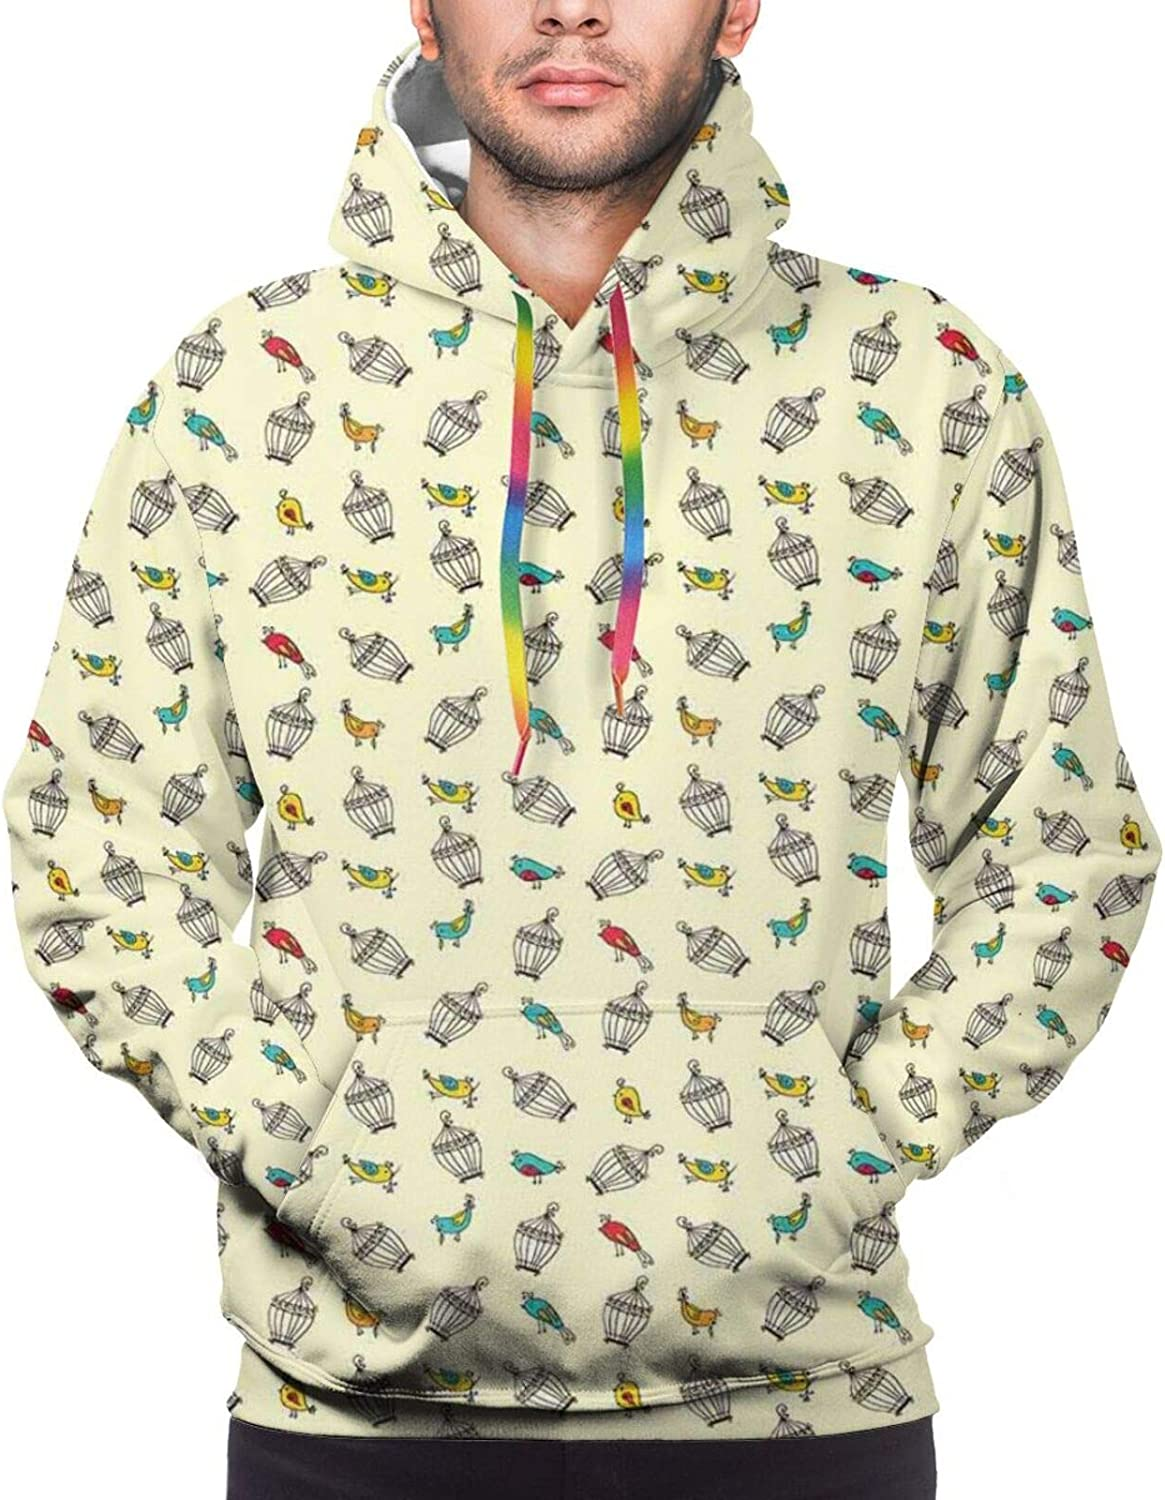 Men's Hoodies Sweatshirts,Colorful Little Birds Pattern with Green Leaves and Small Flowers On Their Beaks